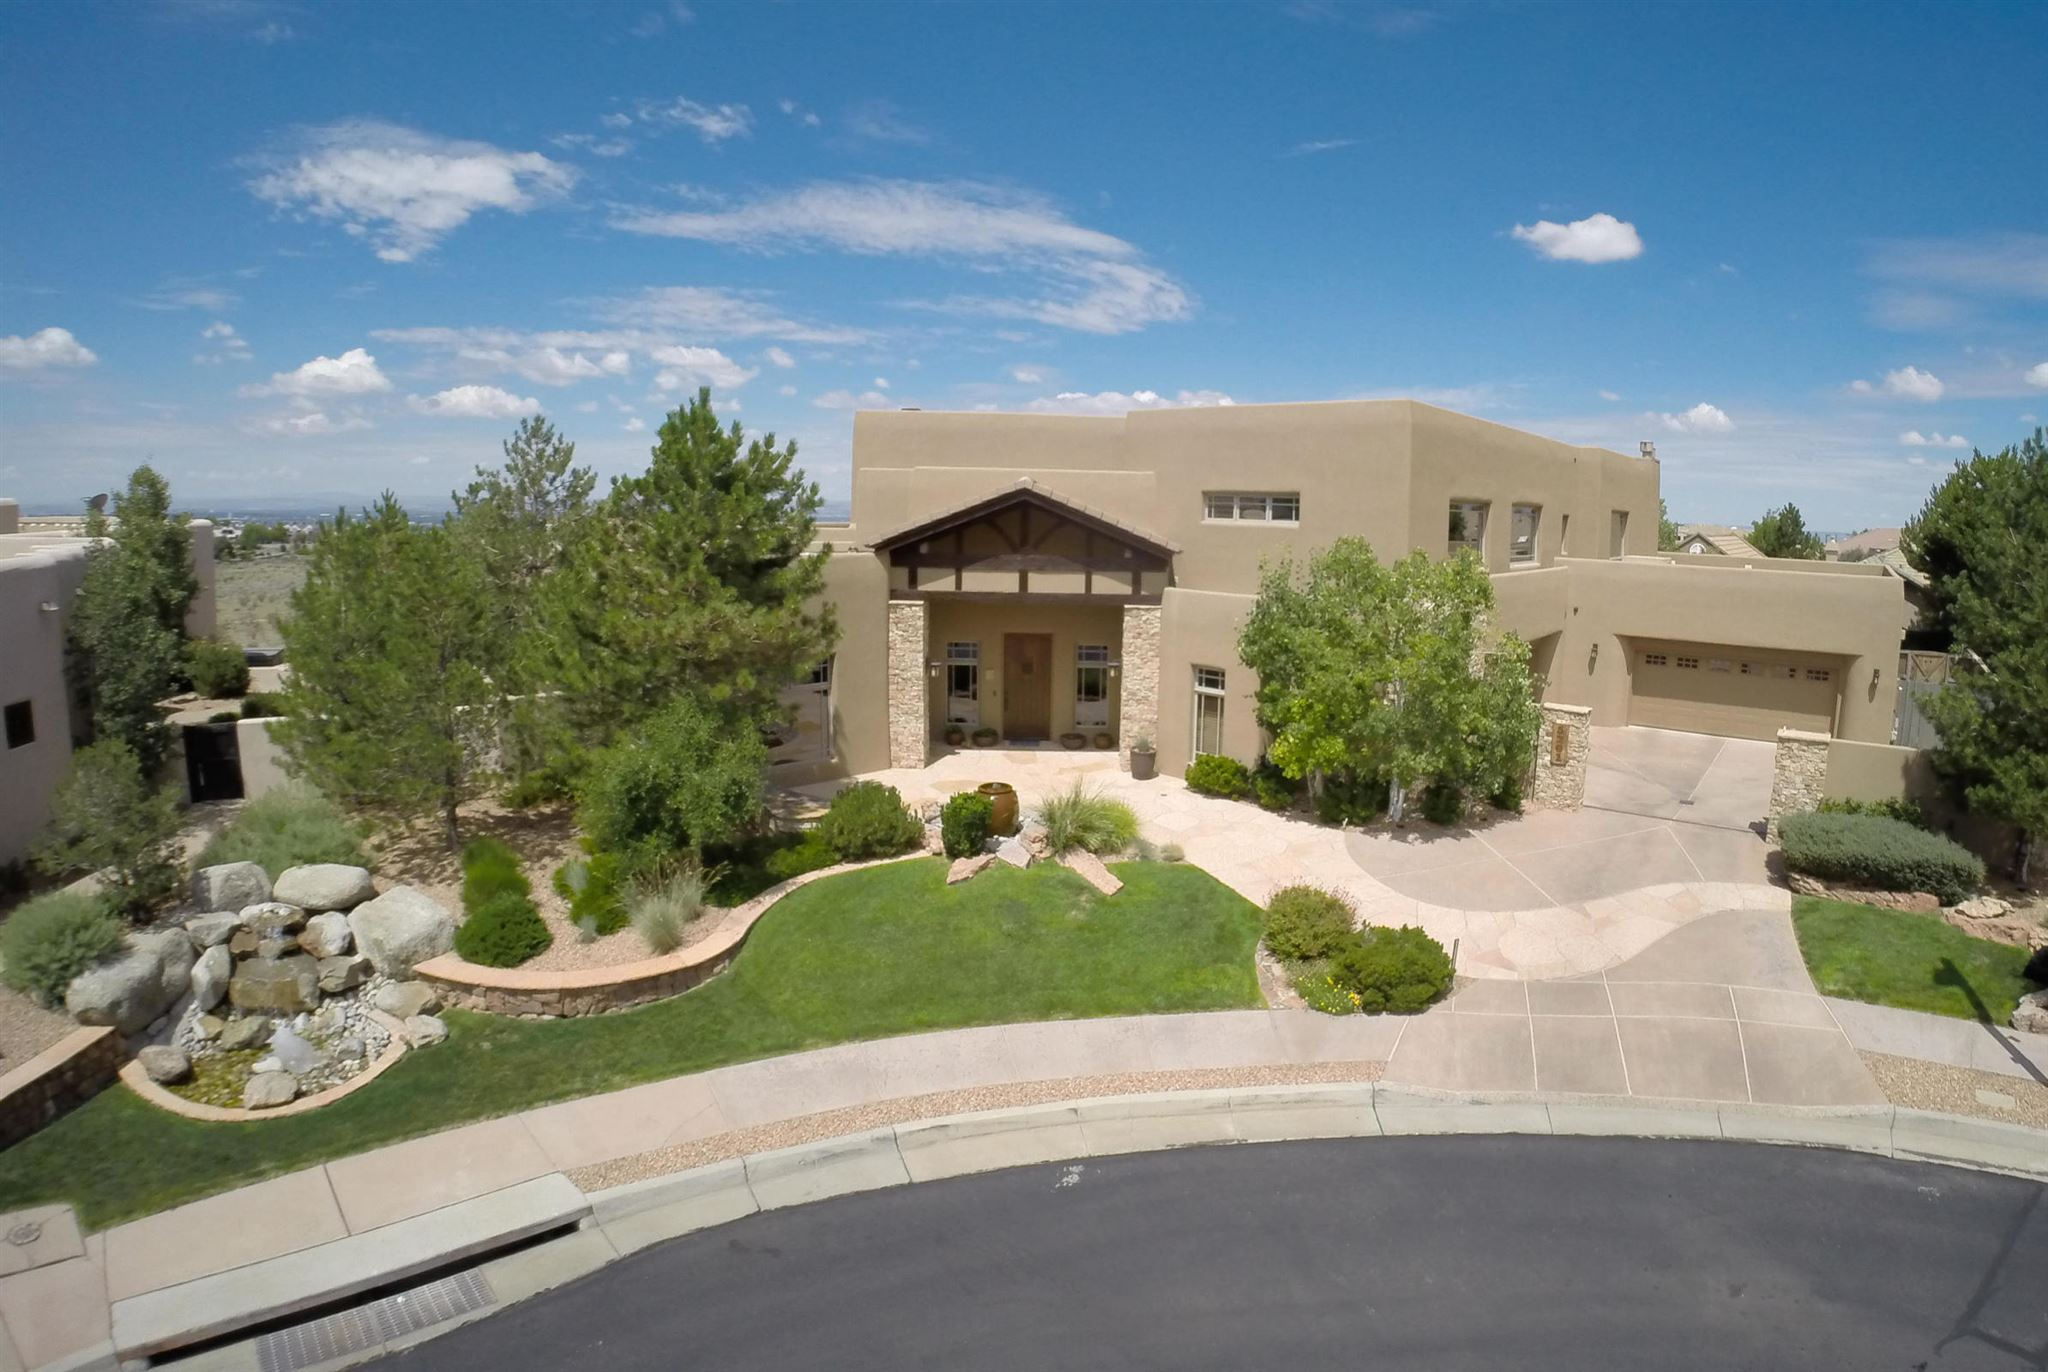 This phenomenal custom Craftsman style residence located in The Canyons at High Desert, backs up to Bear Canyon Open Space. Phenomenal city and mountain views leave you awestruck at New Mexico's lavish beauty. The exterior is impeccably landscaped and includes a heated pool & spa, fire pit, garden, koi pond and waterfall. The interior is magnificently designed and features wood truss ceiling, 3 fireplaces, 2 laundry rooms (one in master closet), professional kitchen & multiple entertainment spaces. This one of a kind, unique home is welcoming and provides ample space for family and entertaining. Aerial footage and matterport available! Please see attached supplental information sheet for additional home features. (Photos from previous listing utilized with permission) Audio/Video present.